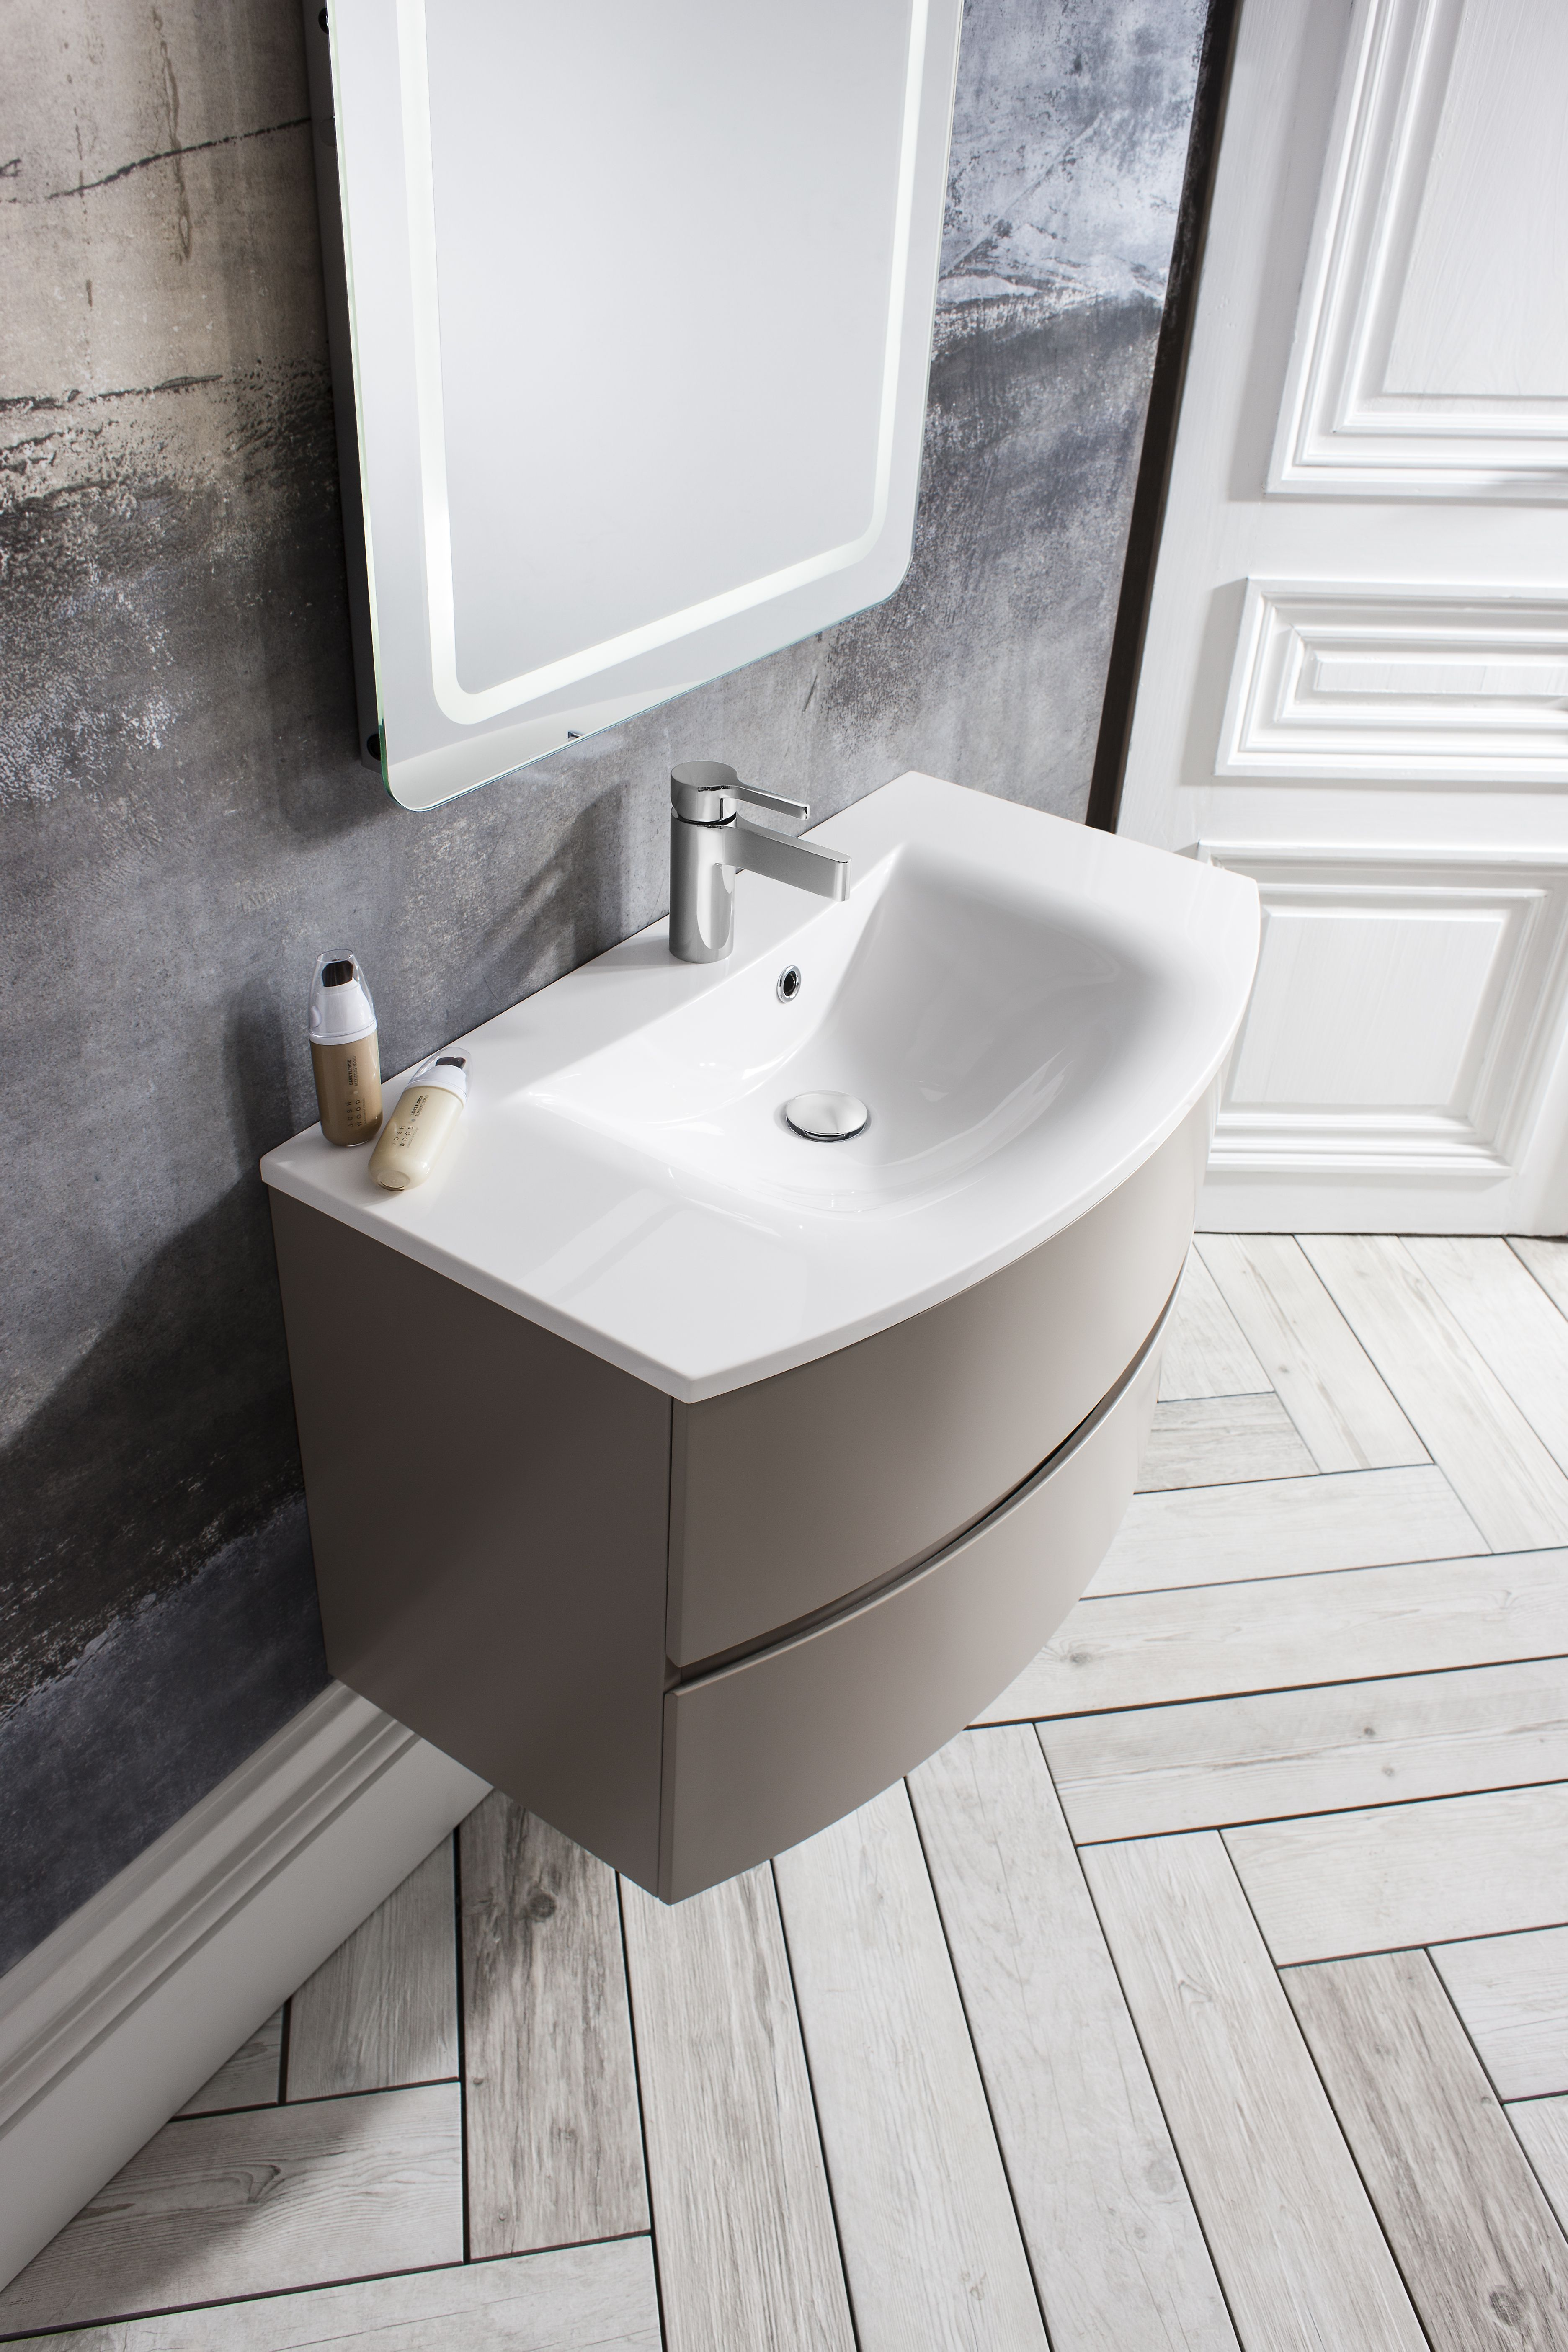 Designer Vanity Units For Bathroom Awesome Modern Vanity Unit Guaranteed To Store All Our Bathroom Essentials Design Ideas